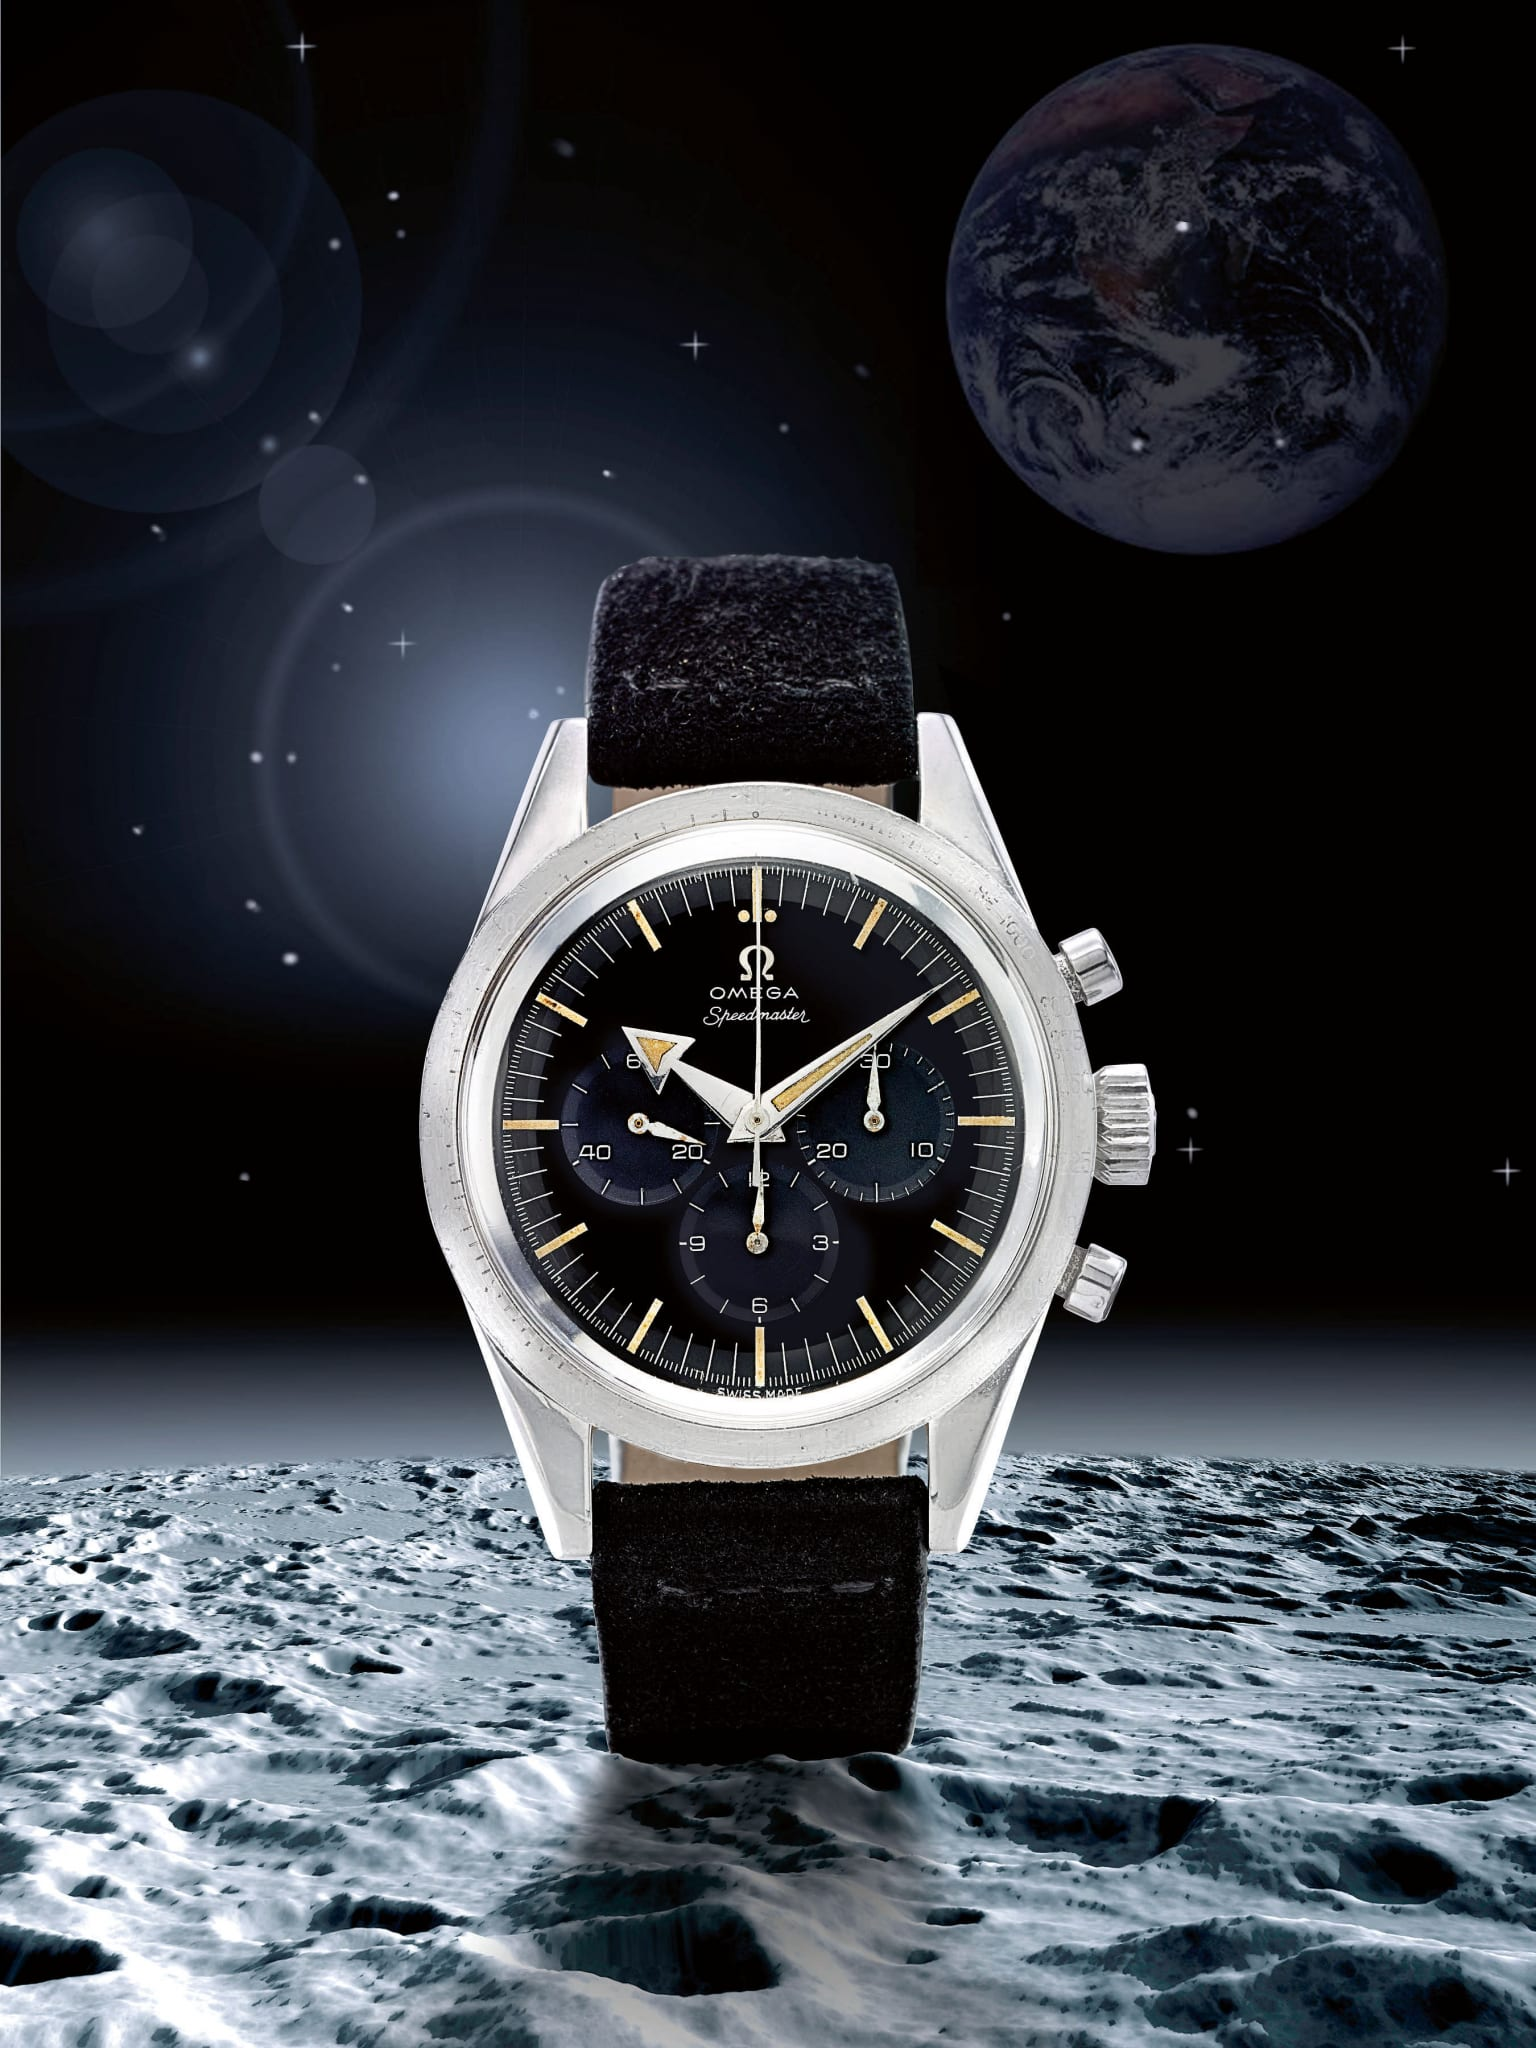 Moonwatch Sale Sets Price Records At Sotheby S 50th Anniversary Moon